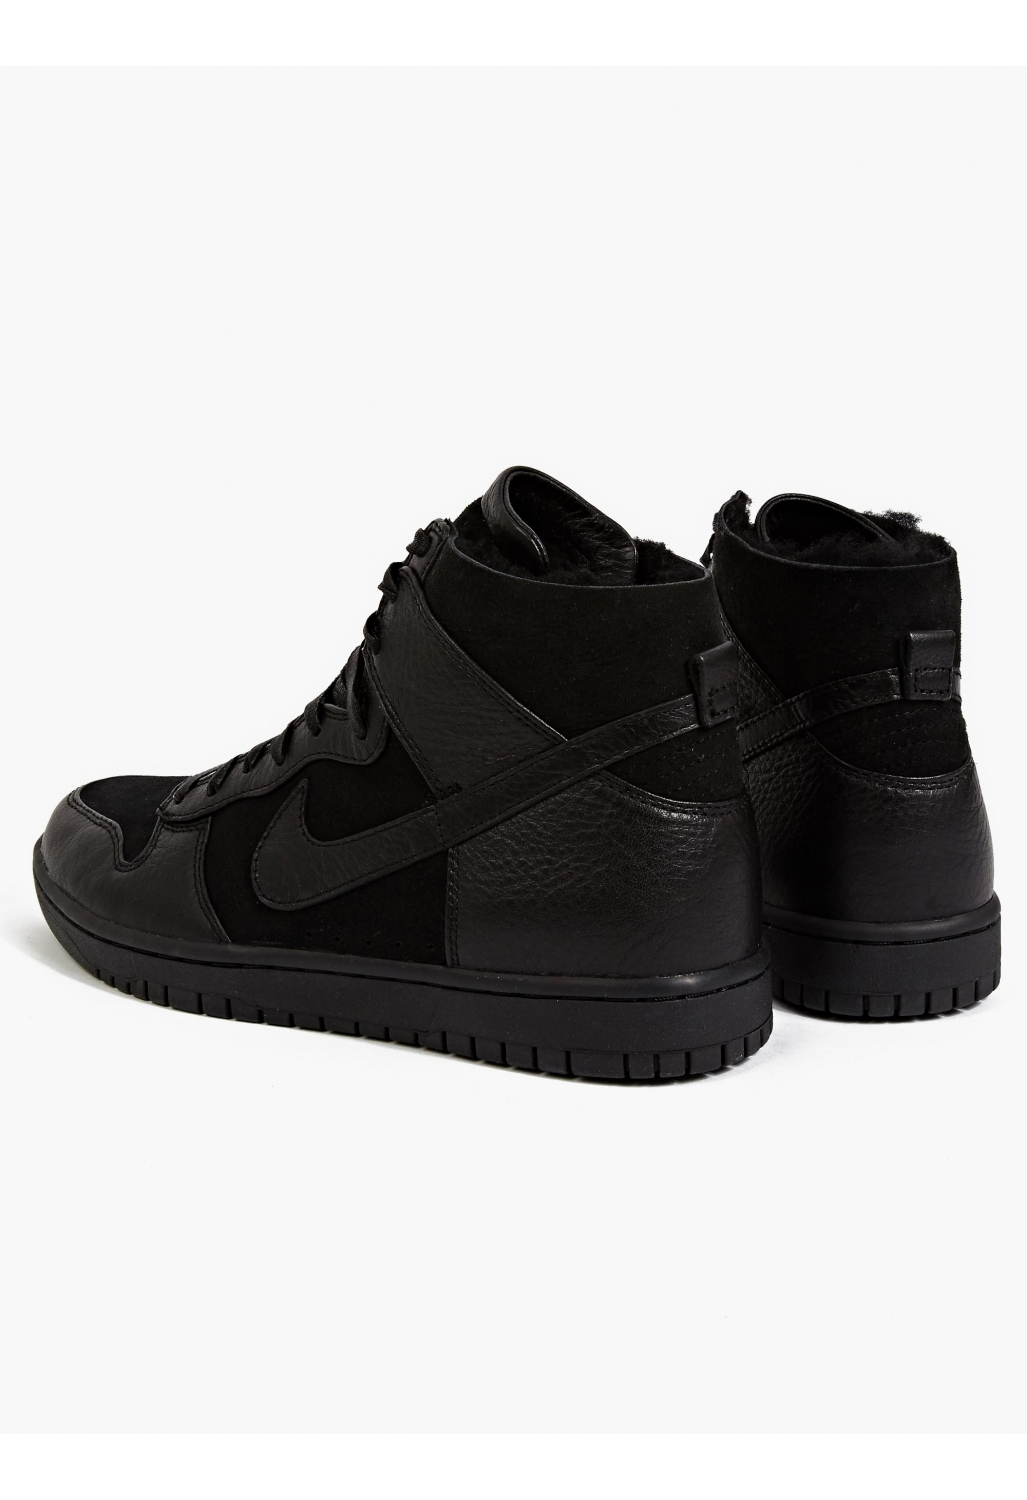 nike s dunk sp sherpa hi top sneakers in black for